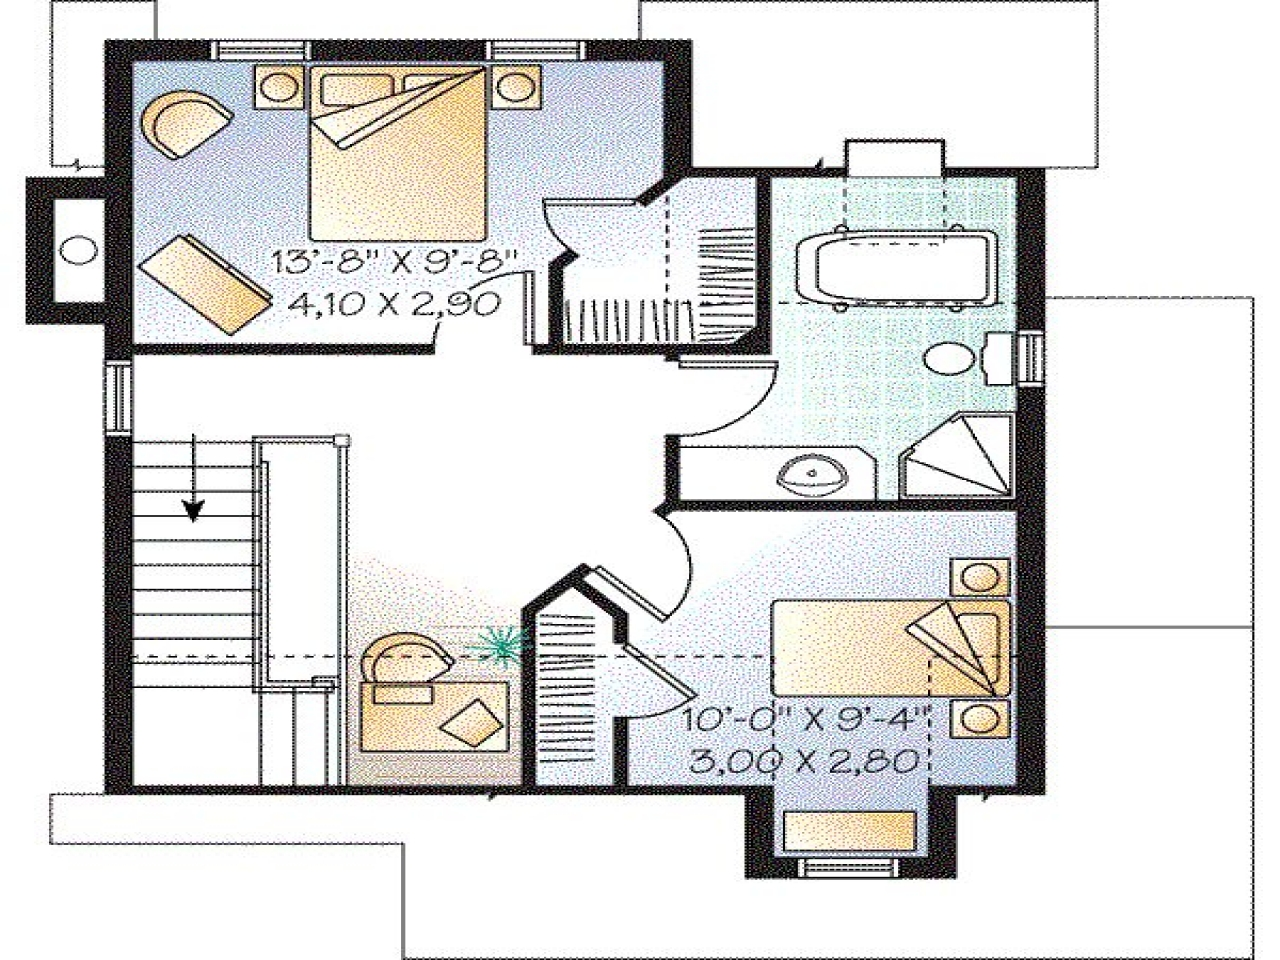 1200 square foot house plans 1200 square feet 1 floor for 1200 sq ft single floor house plans